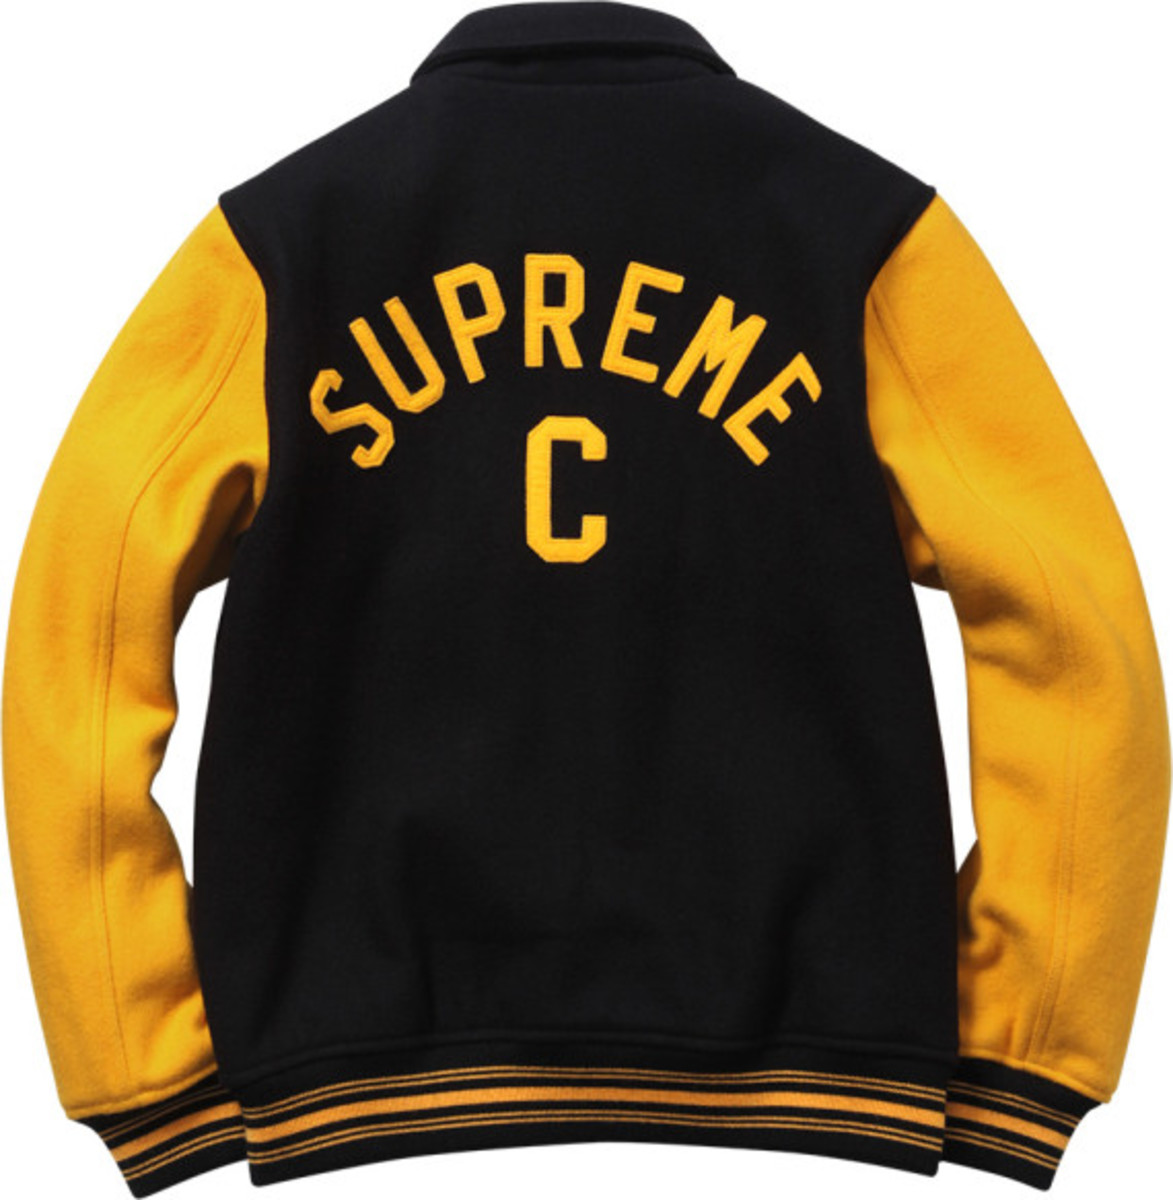 supreme-fall-winter-2013-outerwear-collection-23